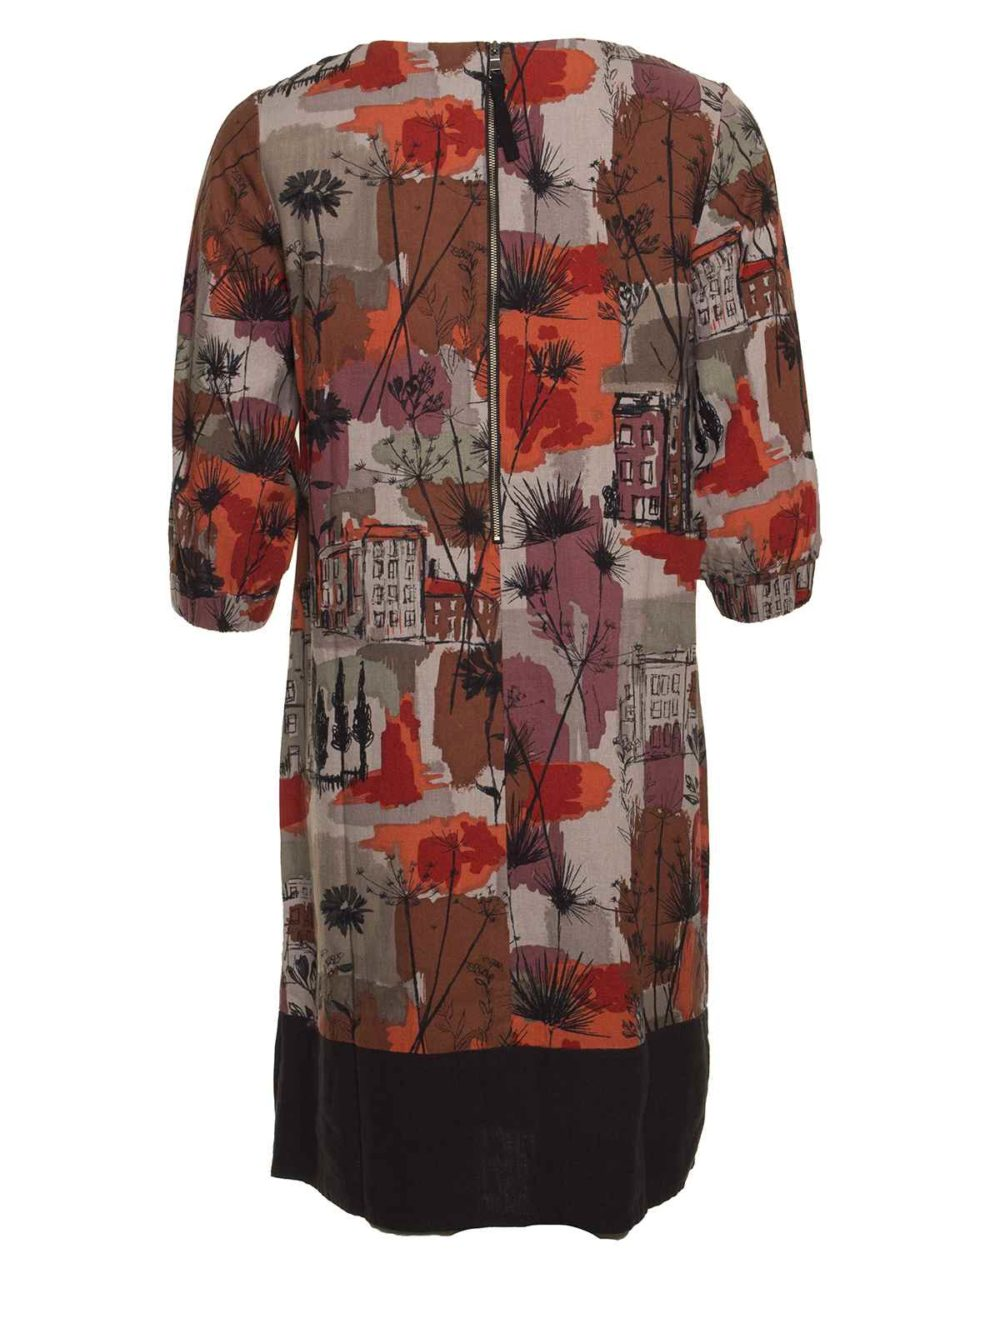 Glasgow Dress Thought Clothing Katie Kerr Women's Clothing